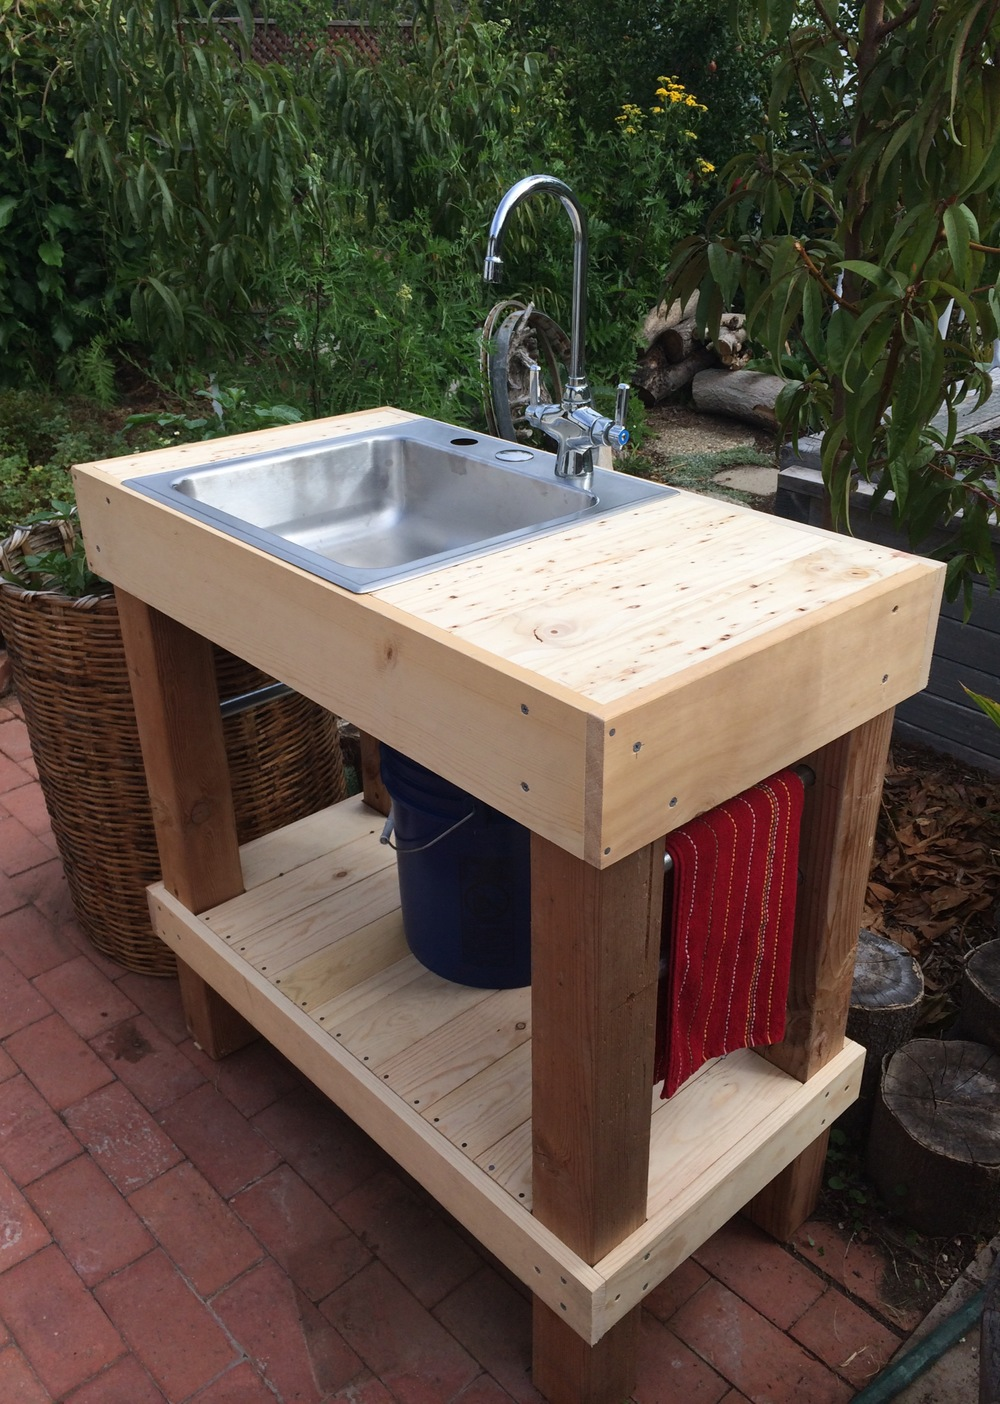 Outdoor sink completed in August 2014. Cost: $106